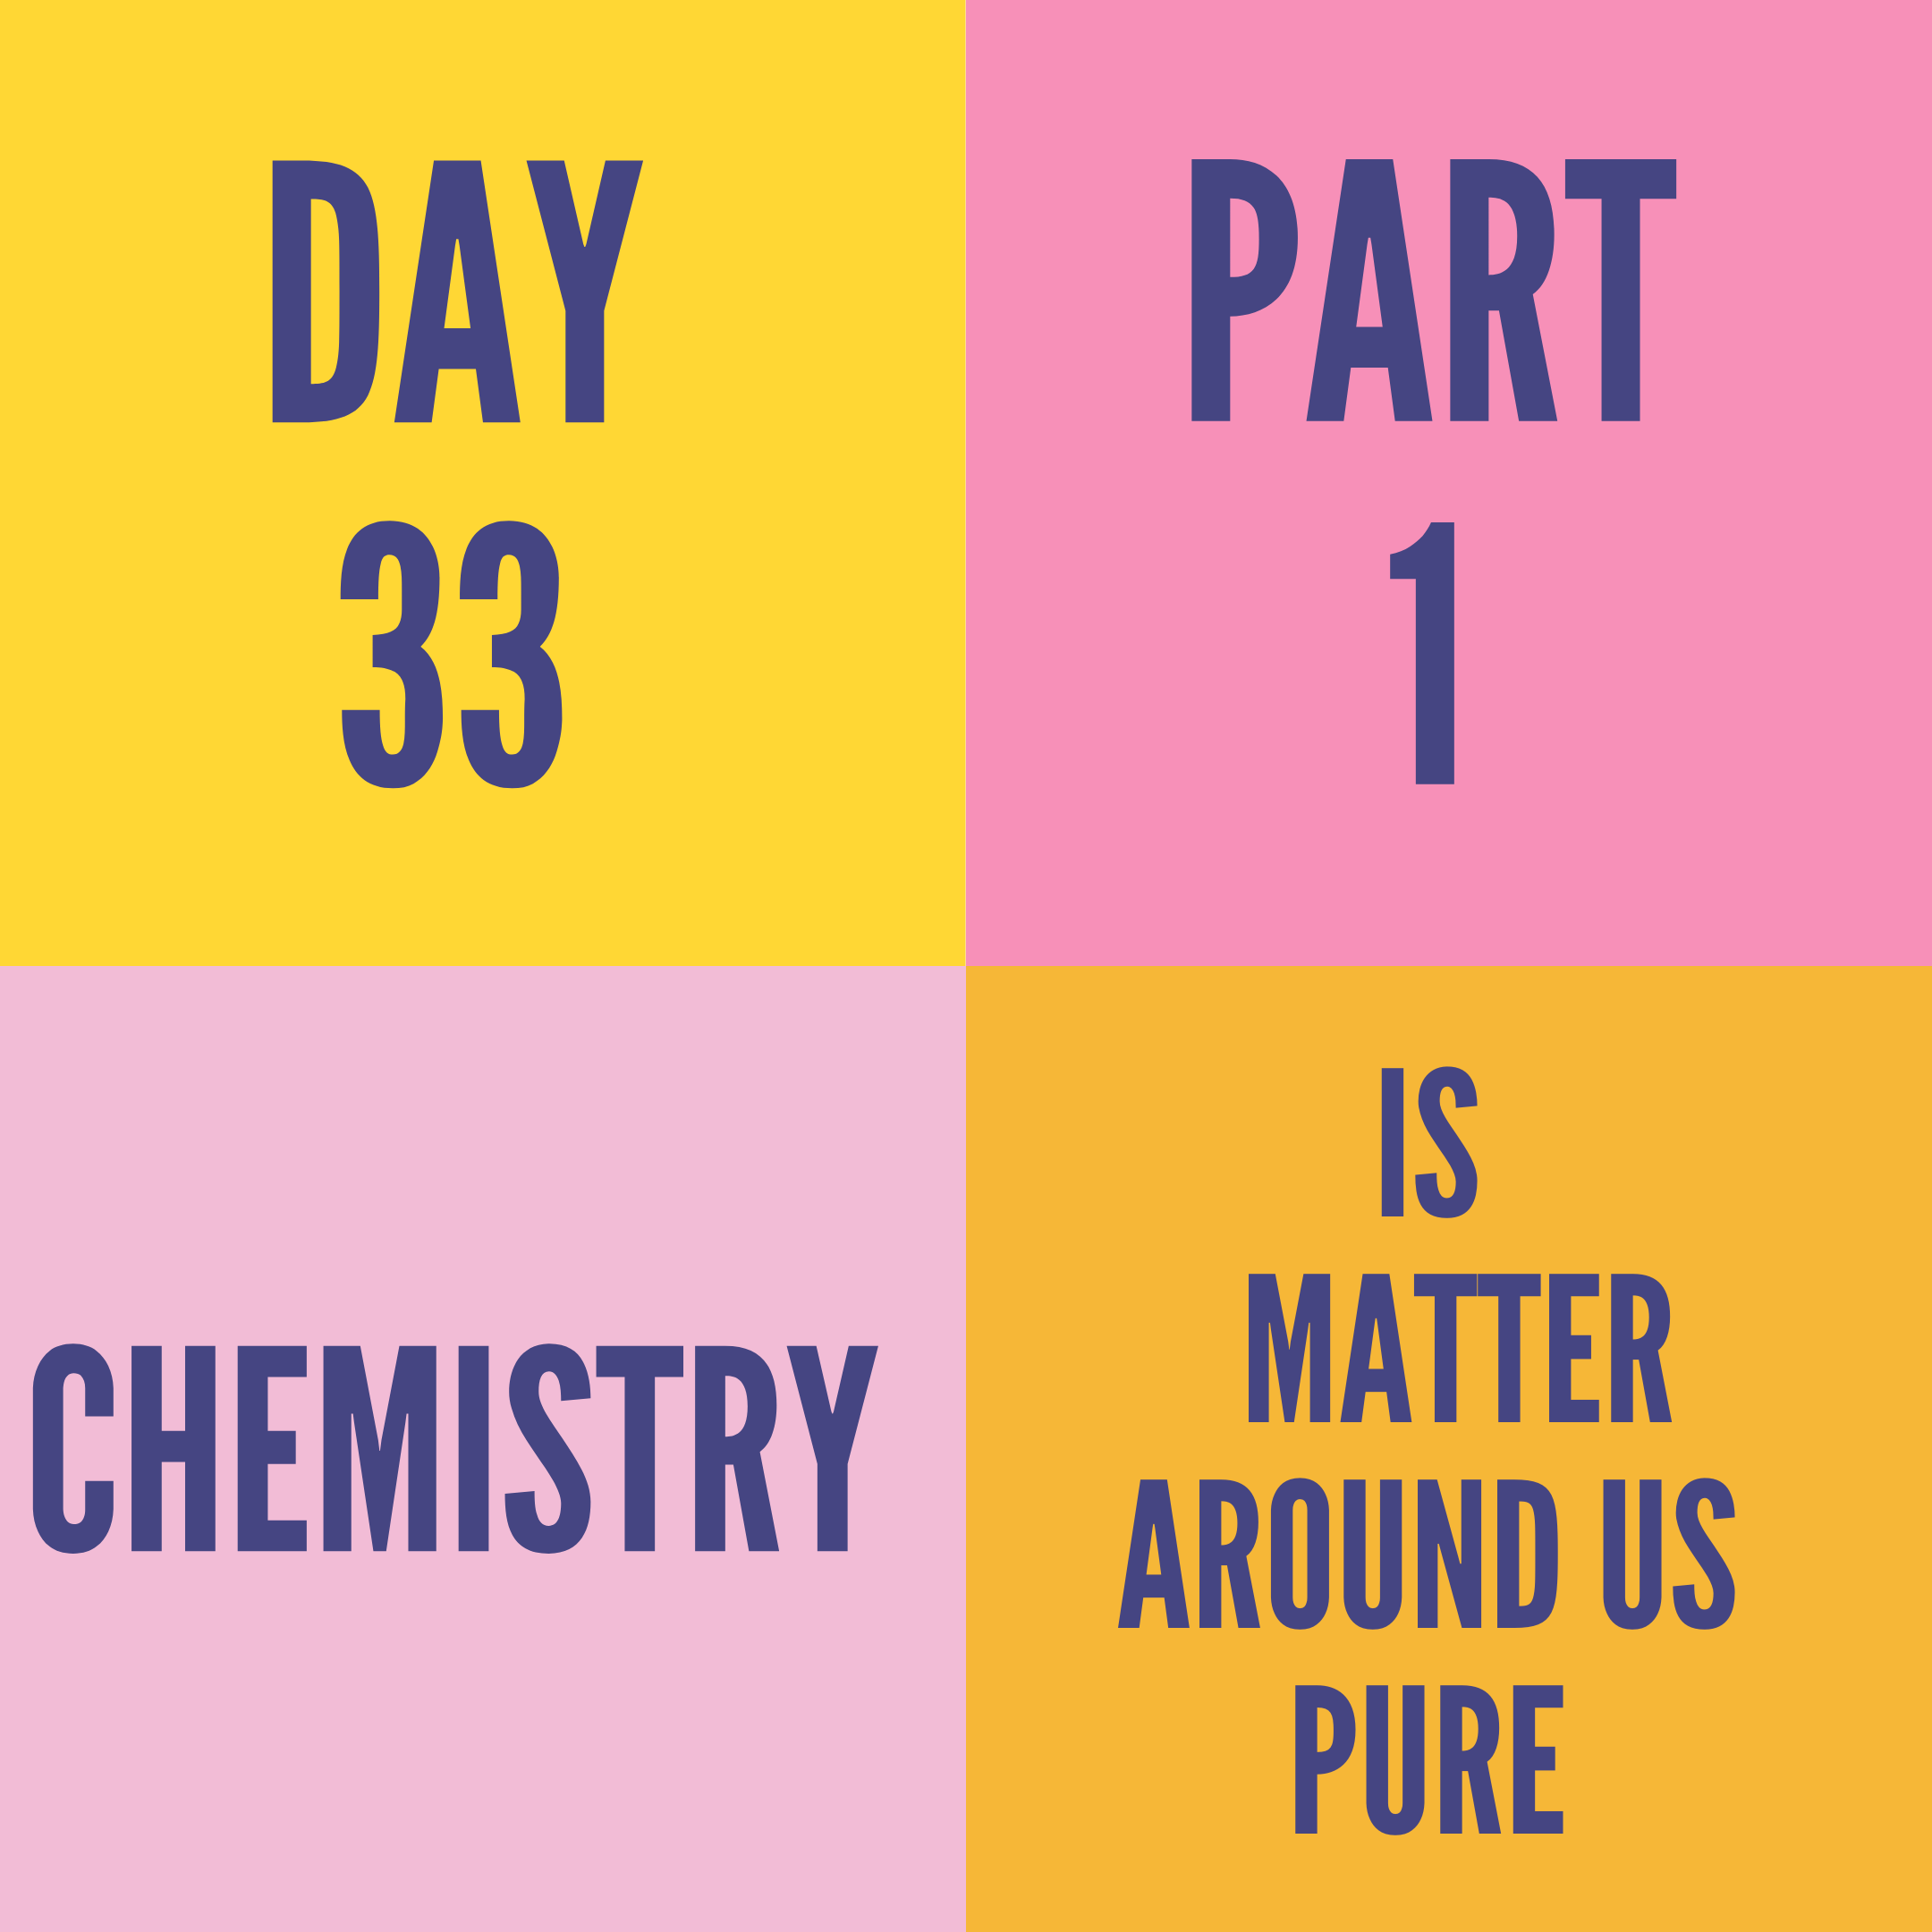 DAY-33 PART-1 IS MATTER AROUND US PURE